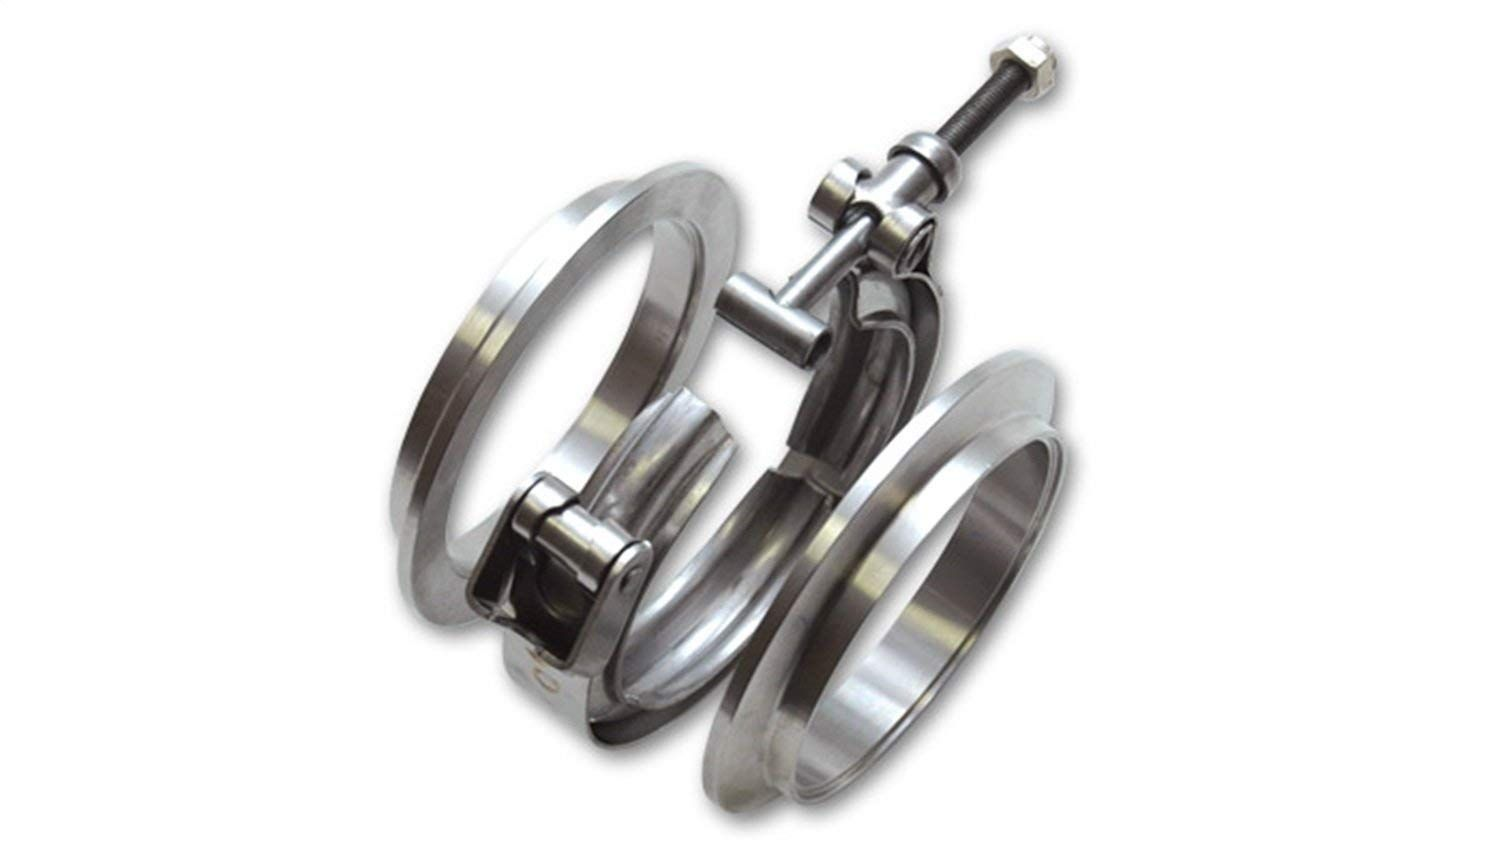 Vibrant STAINLESS STEEL  3 INCH V BAND ASSEMBLY 1491